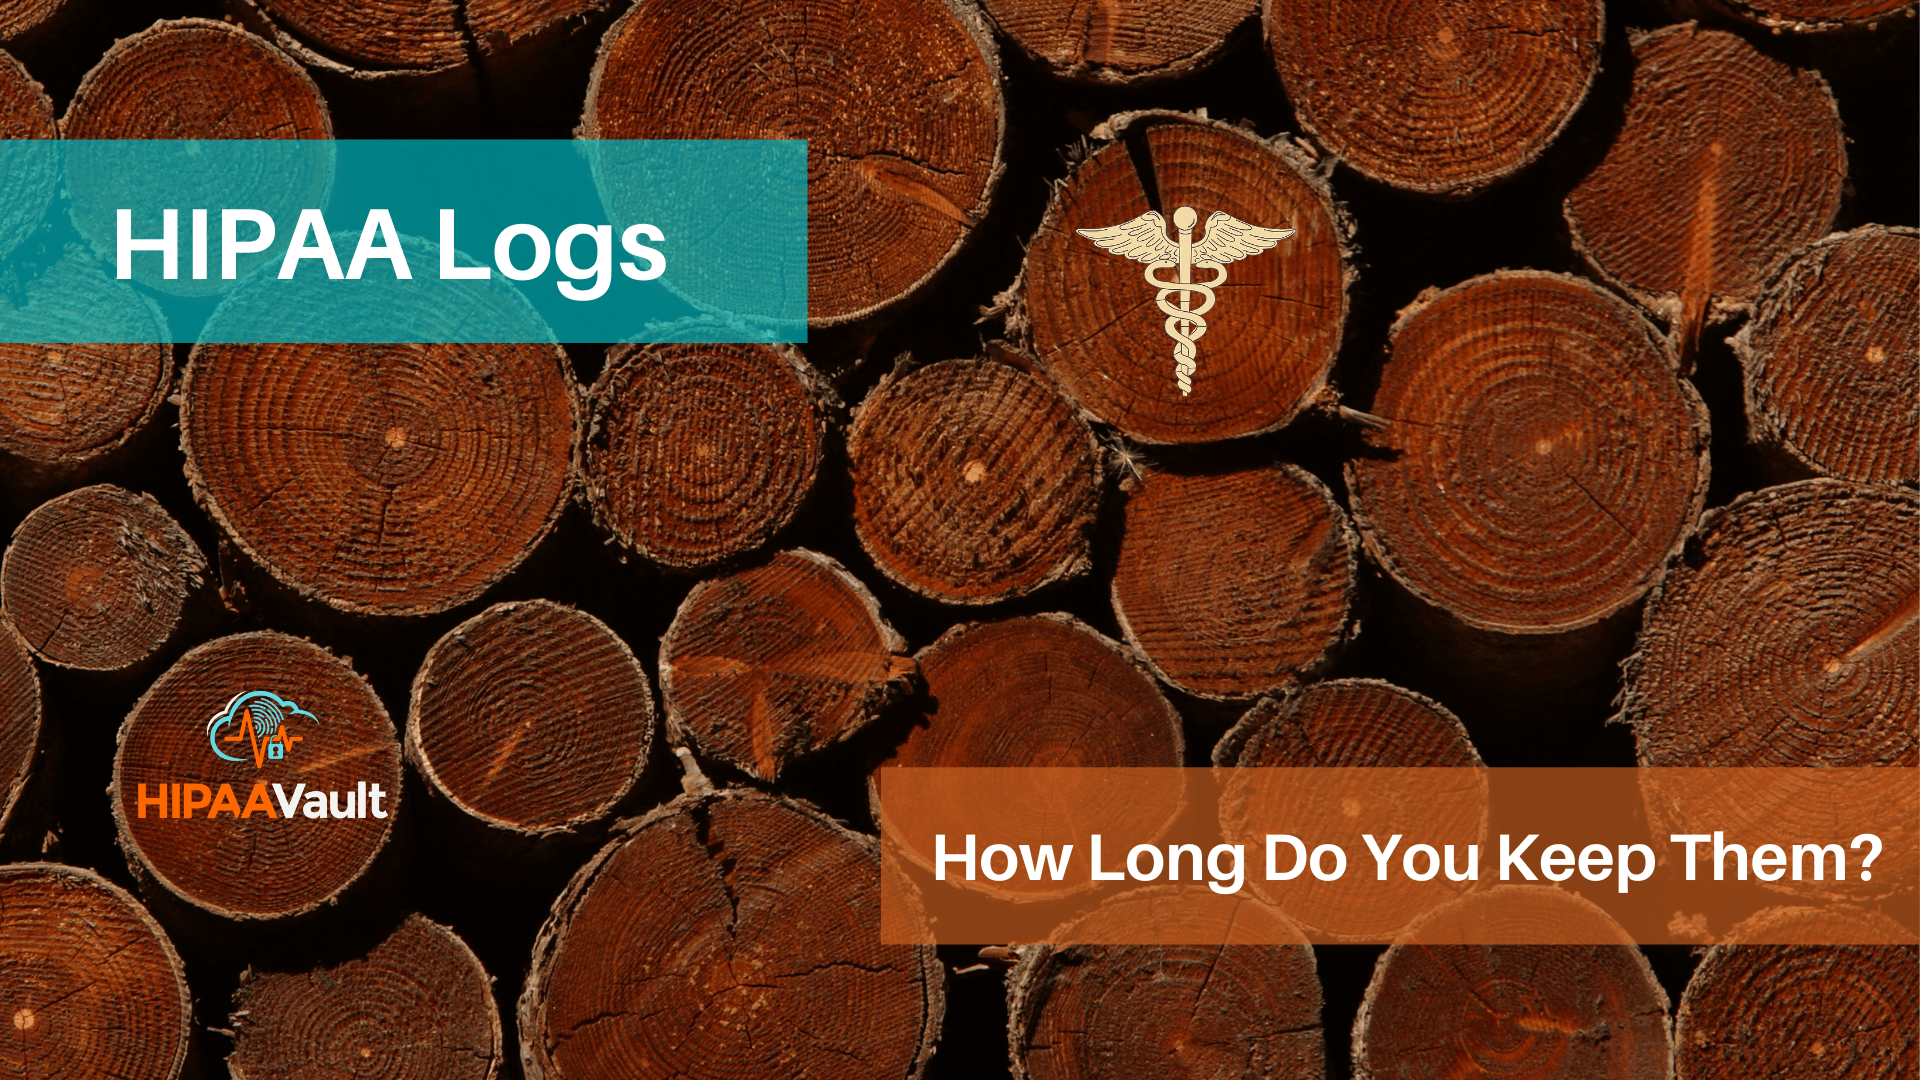 HIPAA Logs have Strict Retention Requirements